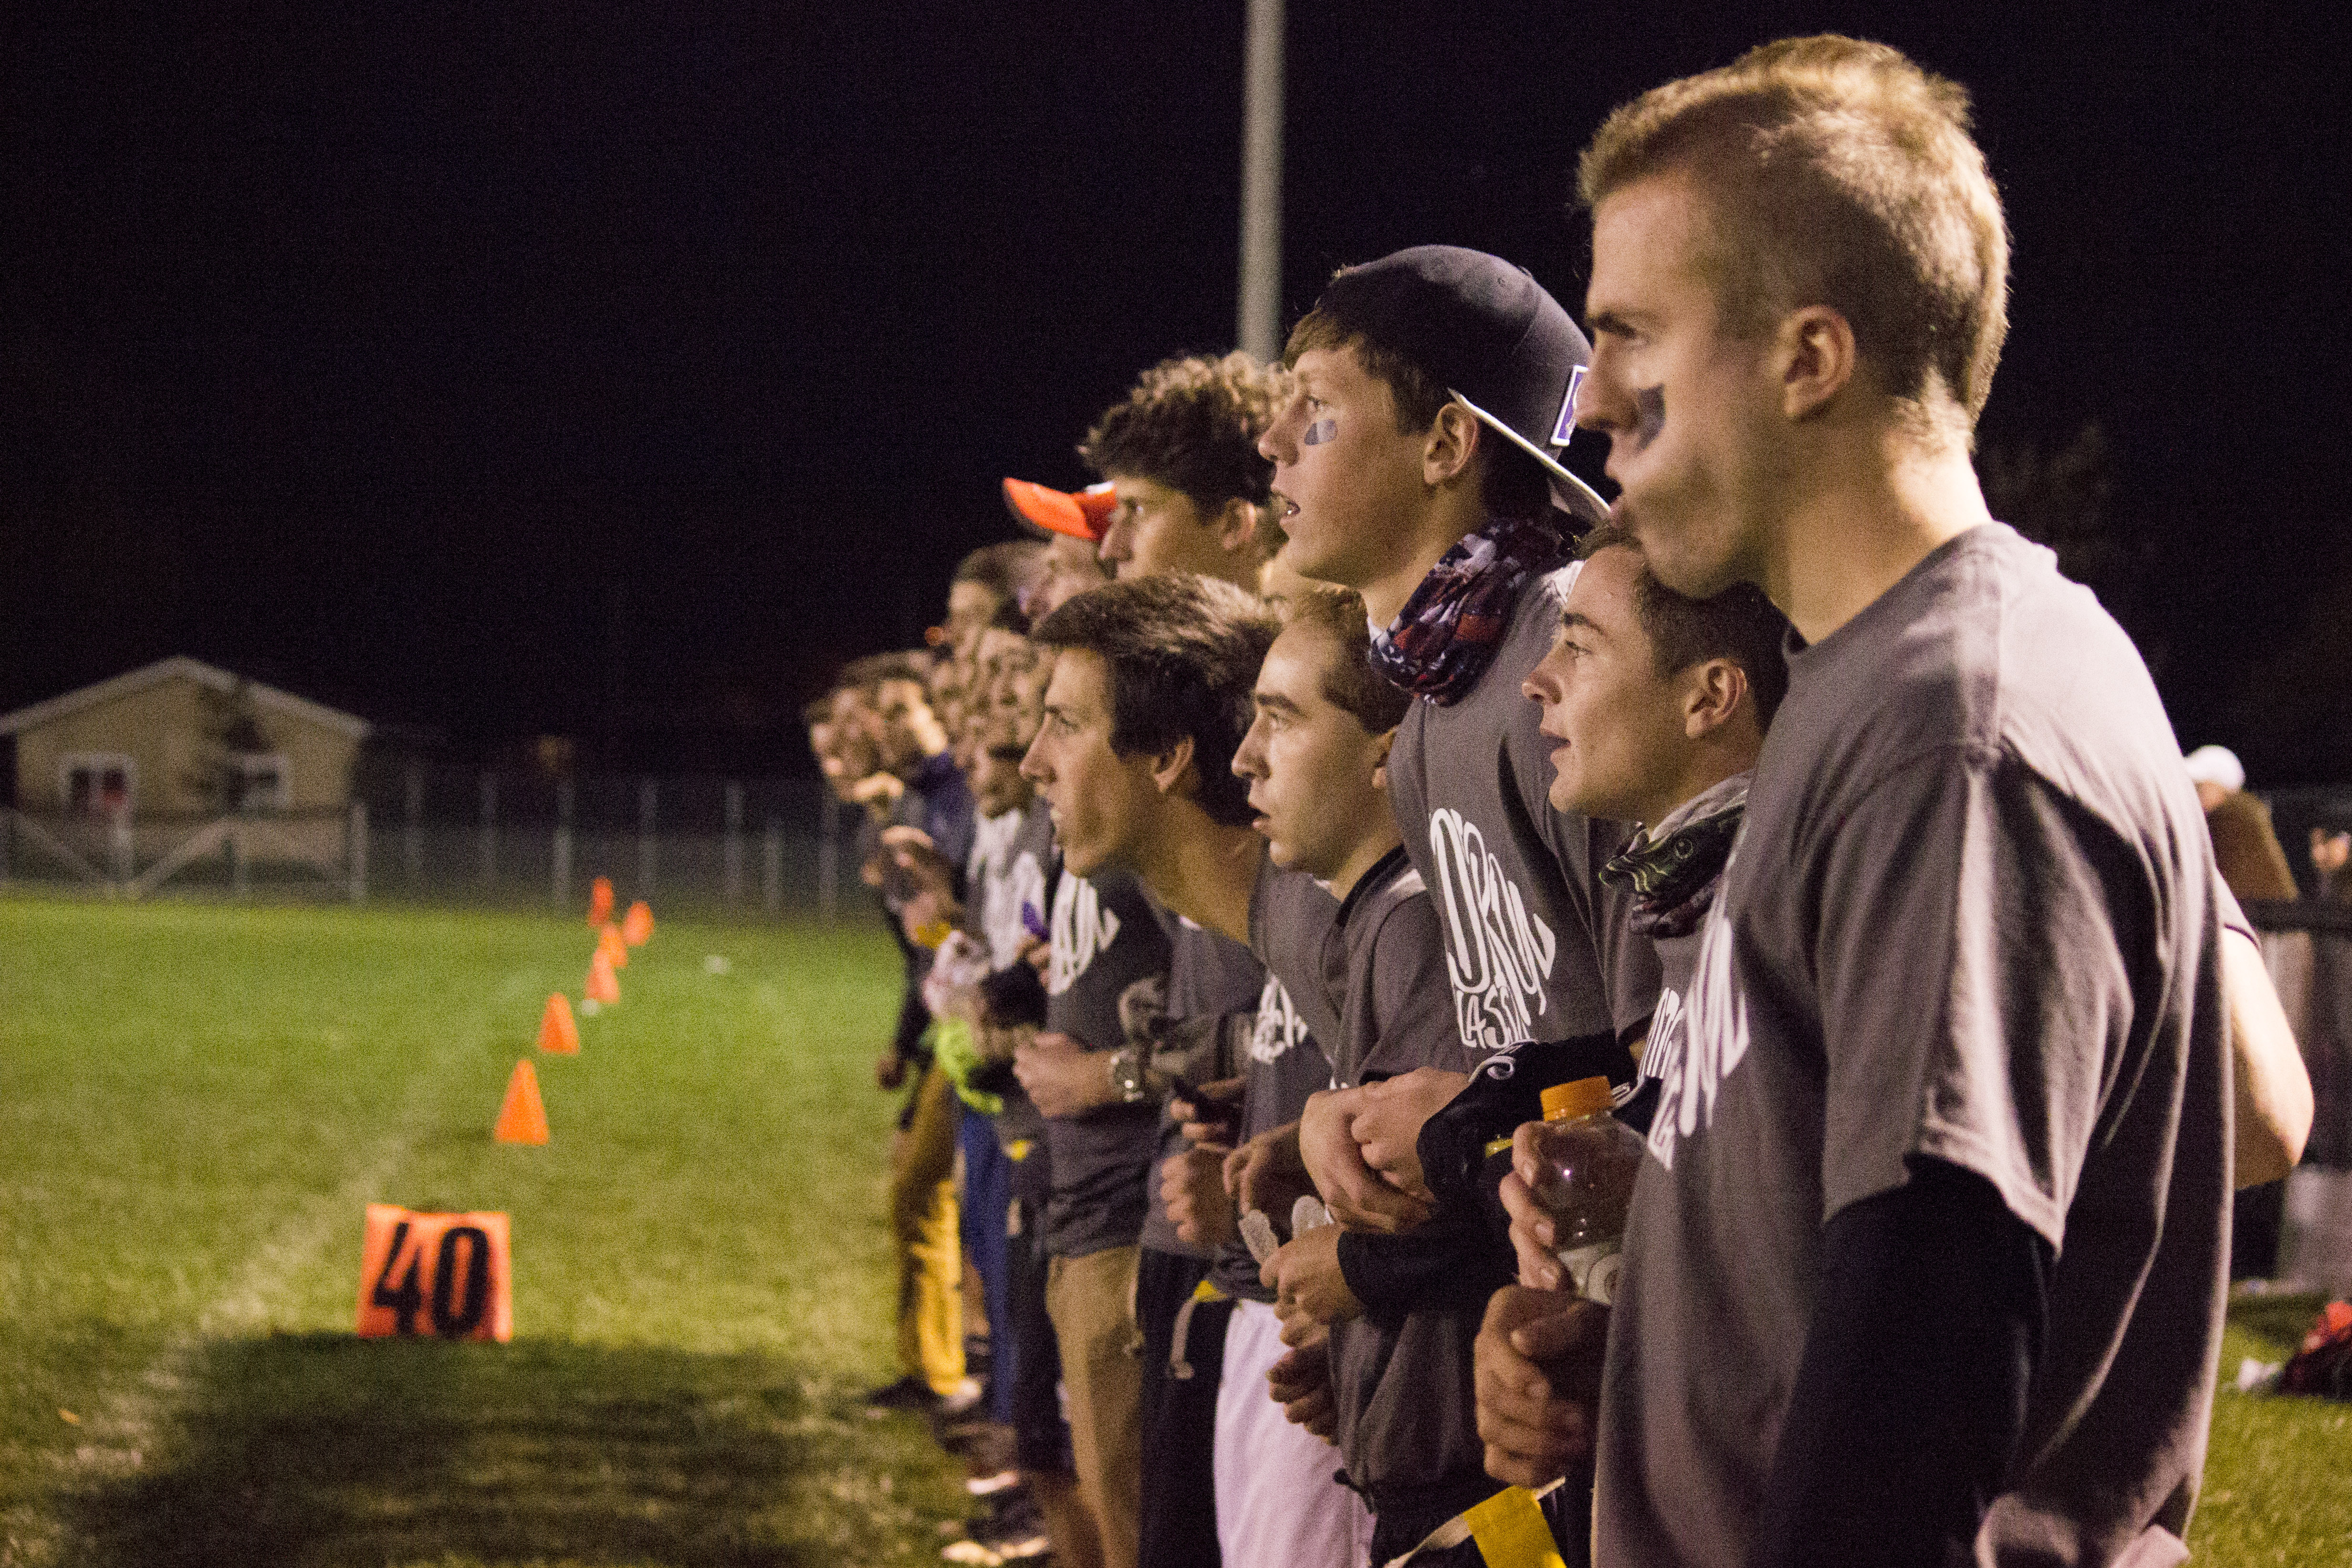 """The Hill watches intently as their teammate attempts to break the tied score with a risky field goal kick. The kick is """"no good"""", sending the game into overtime."""